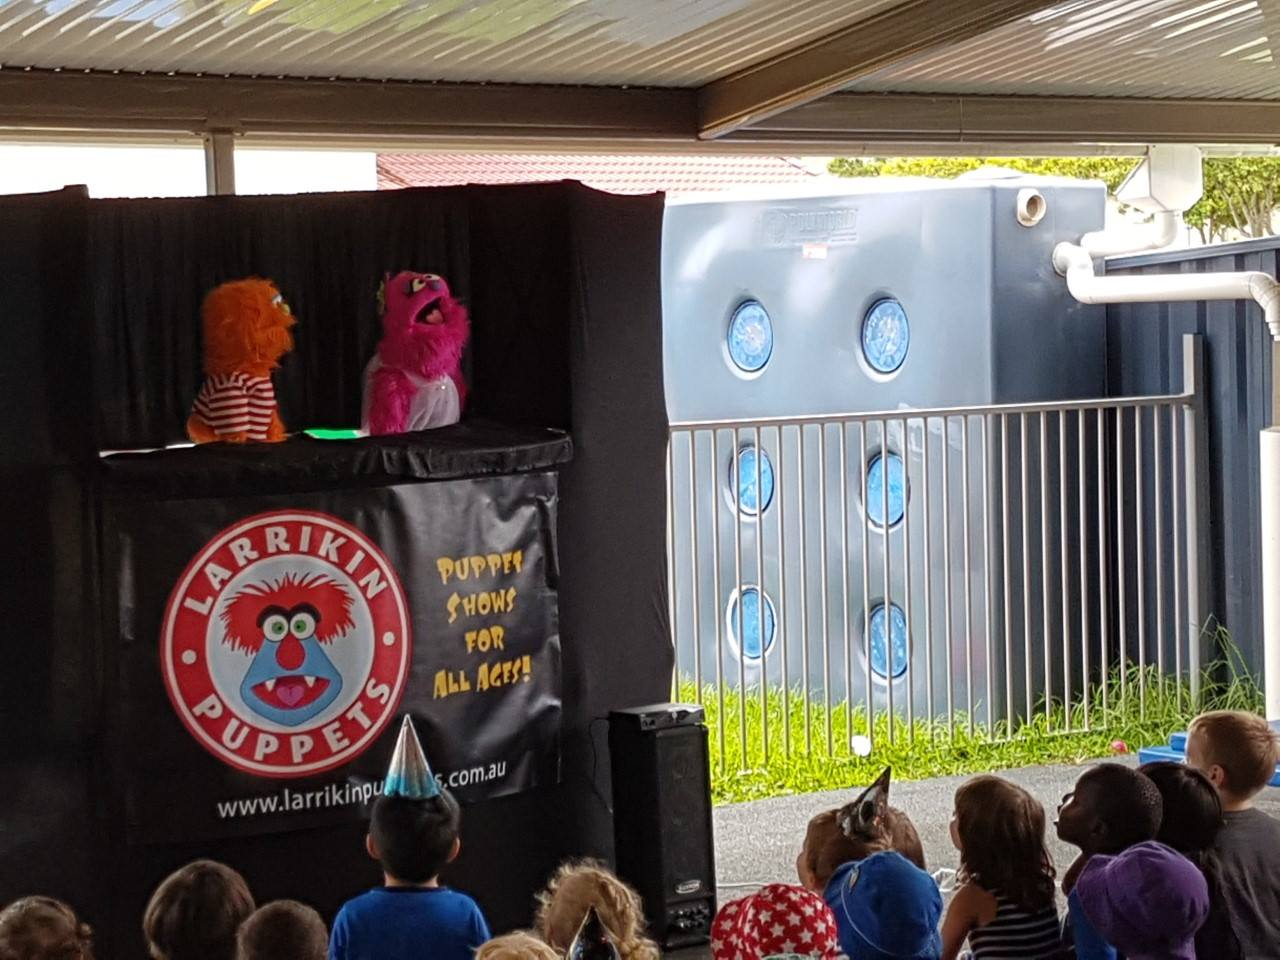 Children's Entertainment, Children's Entertainers, Party Entertainment For Hire | Puppet Show, Puppetry Workshops - Childcare Centres, Early Learning Centres